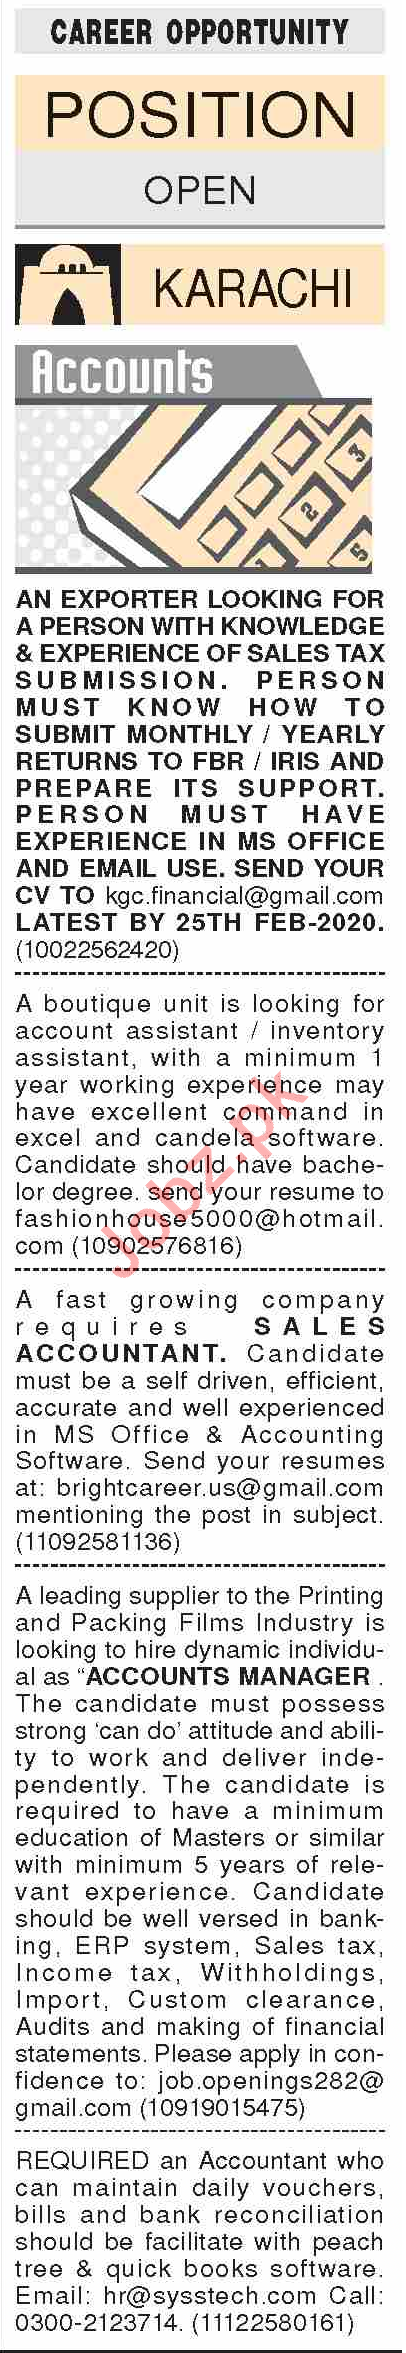 Dawn Sunday Classified Ads 16 Feb 2020 for Accounts Staff